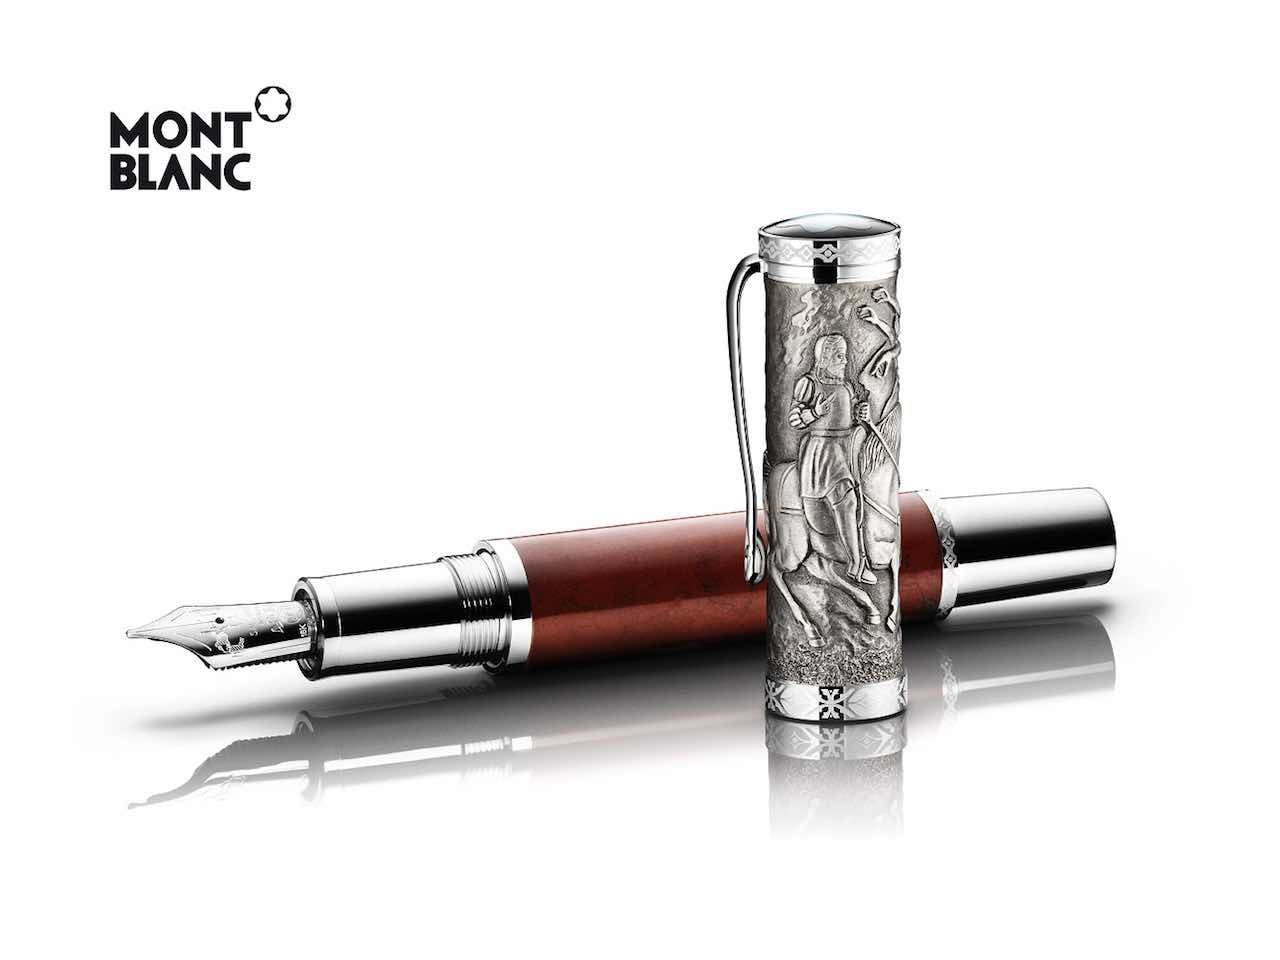 marketing research on reynolds pen For over 170 years, at cross has been home to pens, executive pencil sets, and gifts of the highest quality order ultra-sleek and modern writing instruments.